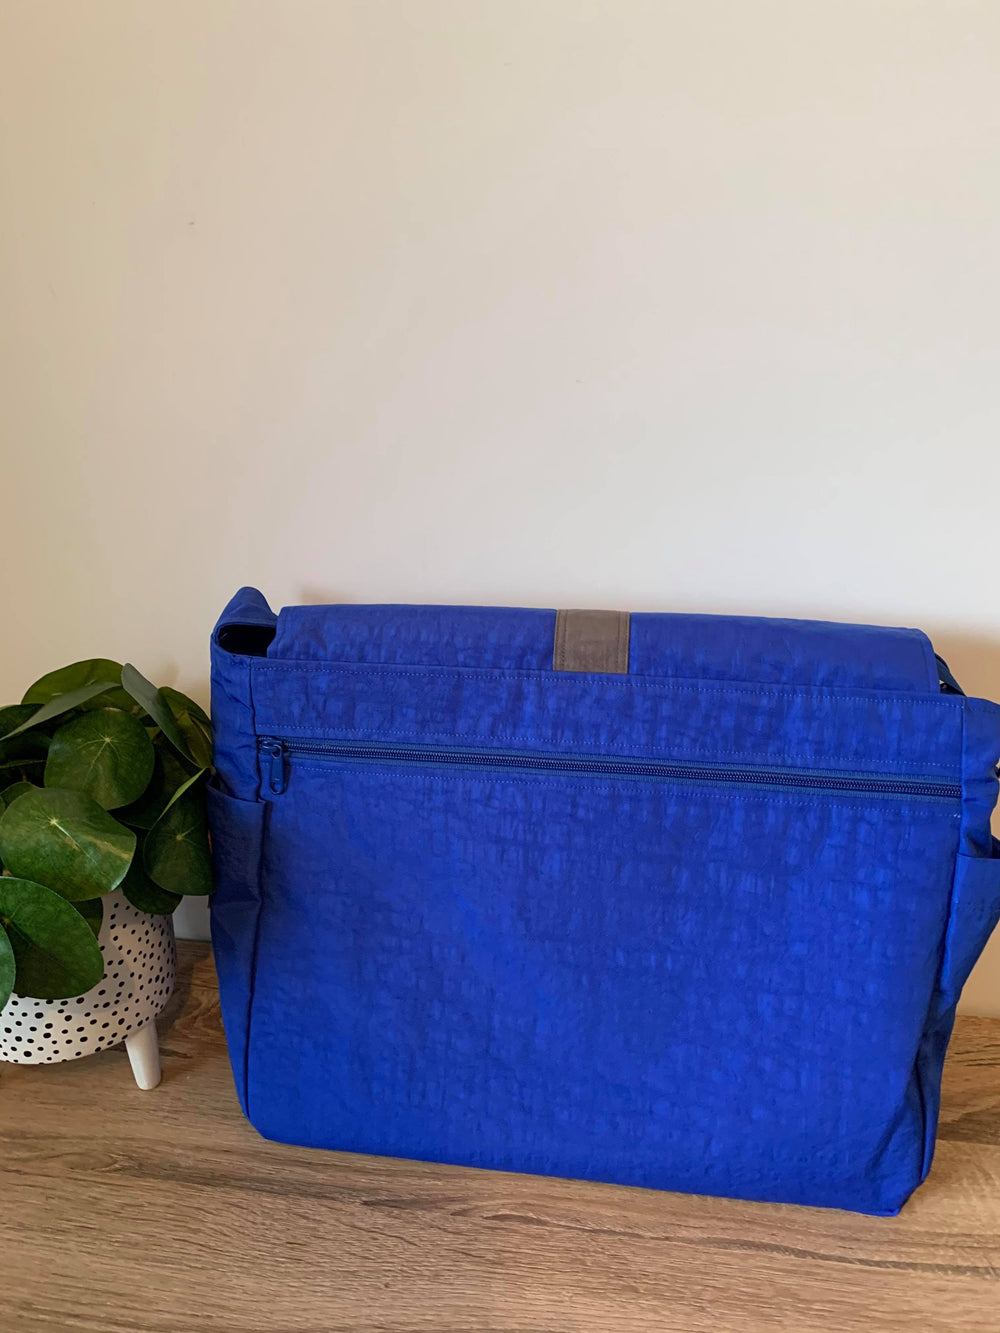 Royal Blue work bag, Messenger bag, Satchel, laptop bag,student bag, teacher bag - Teacher Carry All